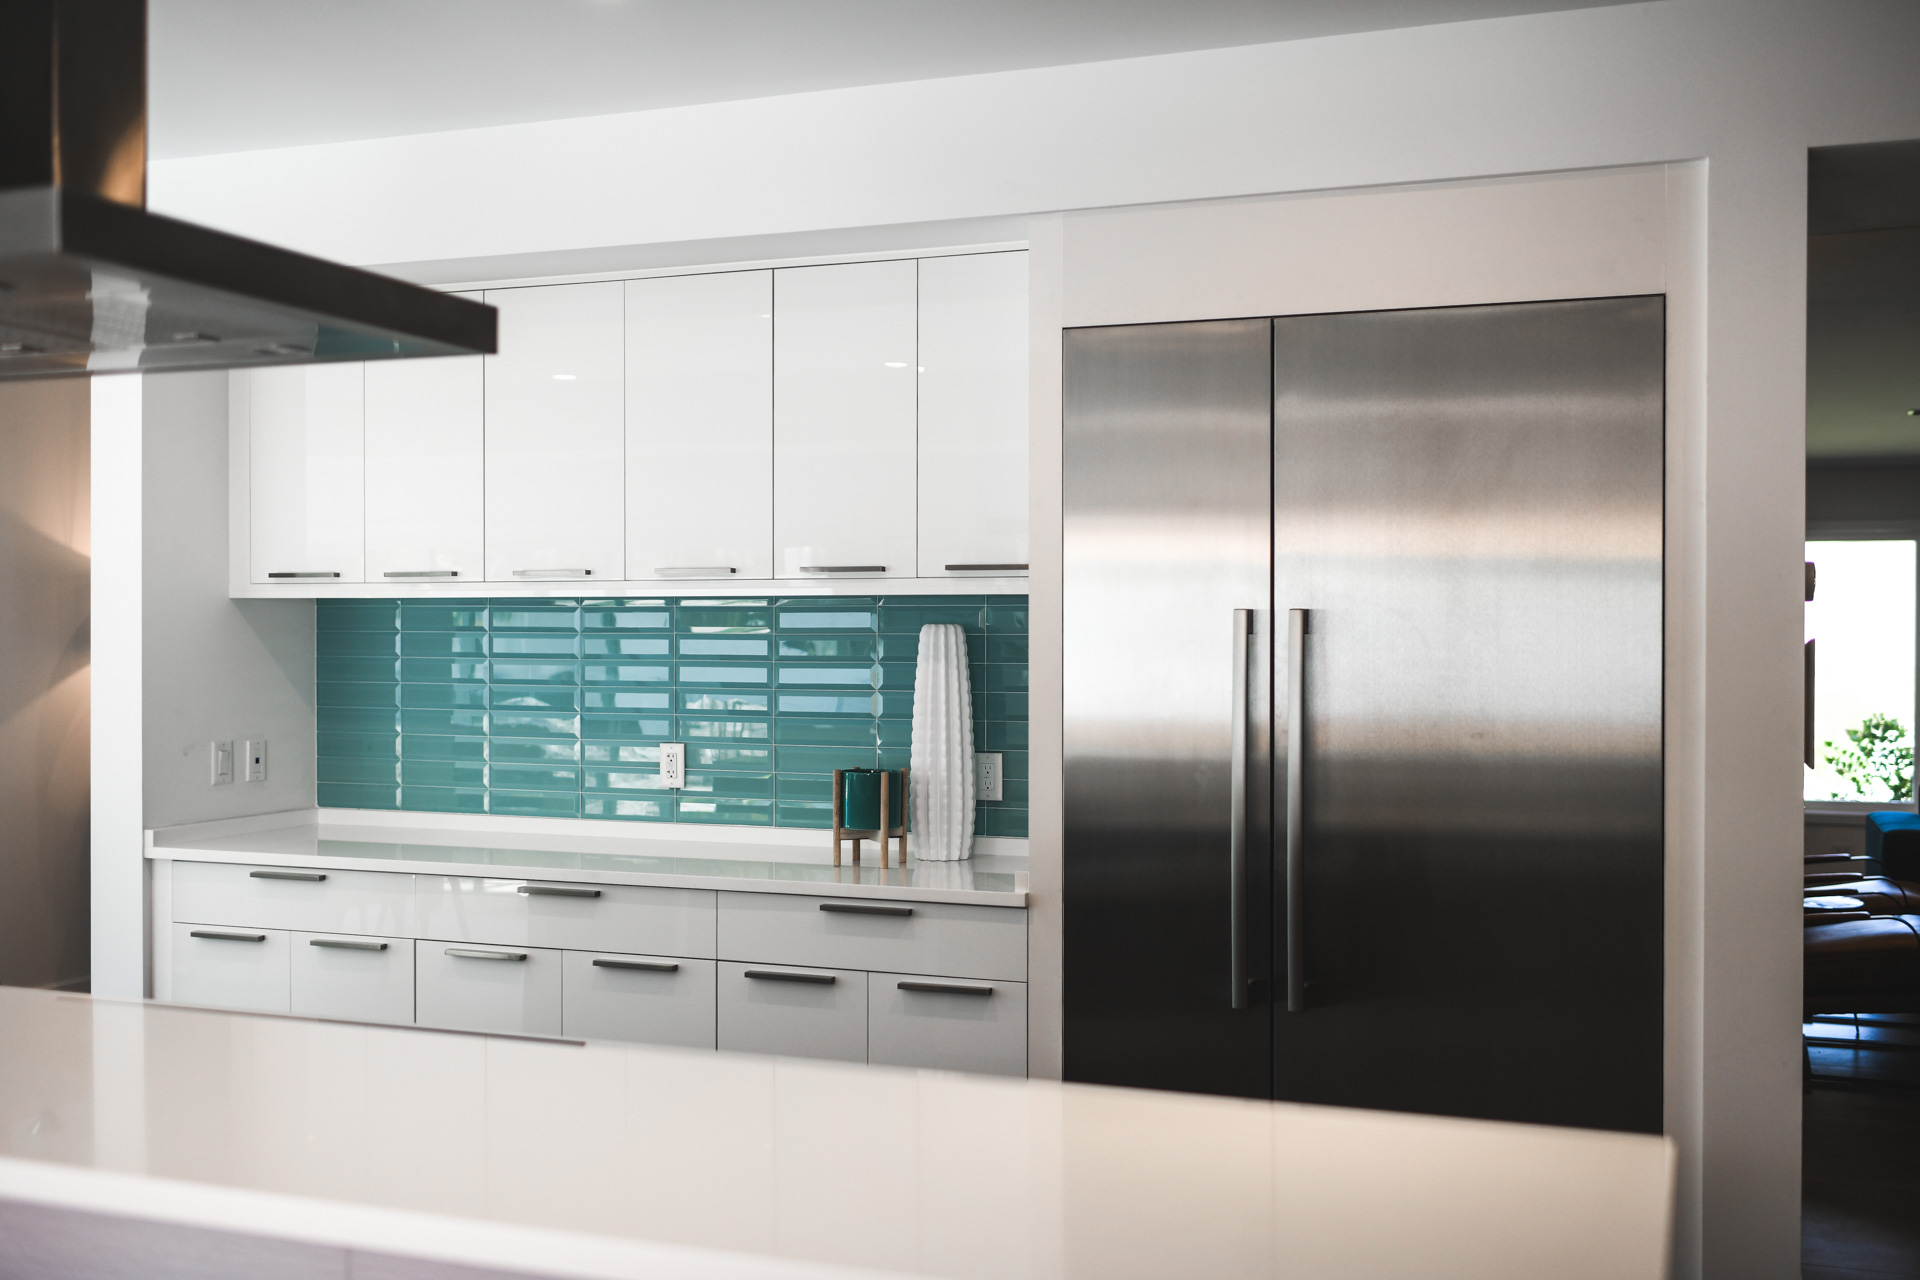 Large Refrigerator and Freezer With Kitchen Counter Space